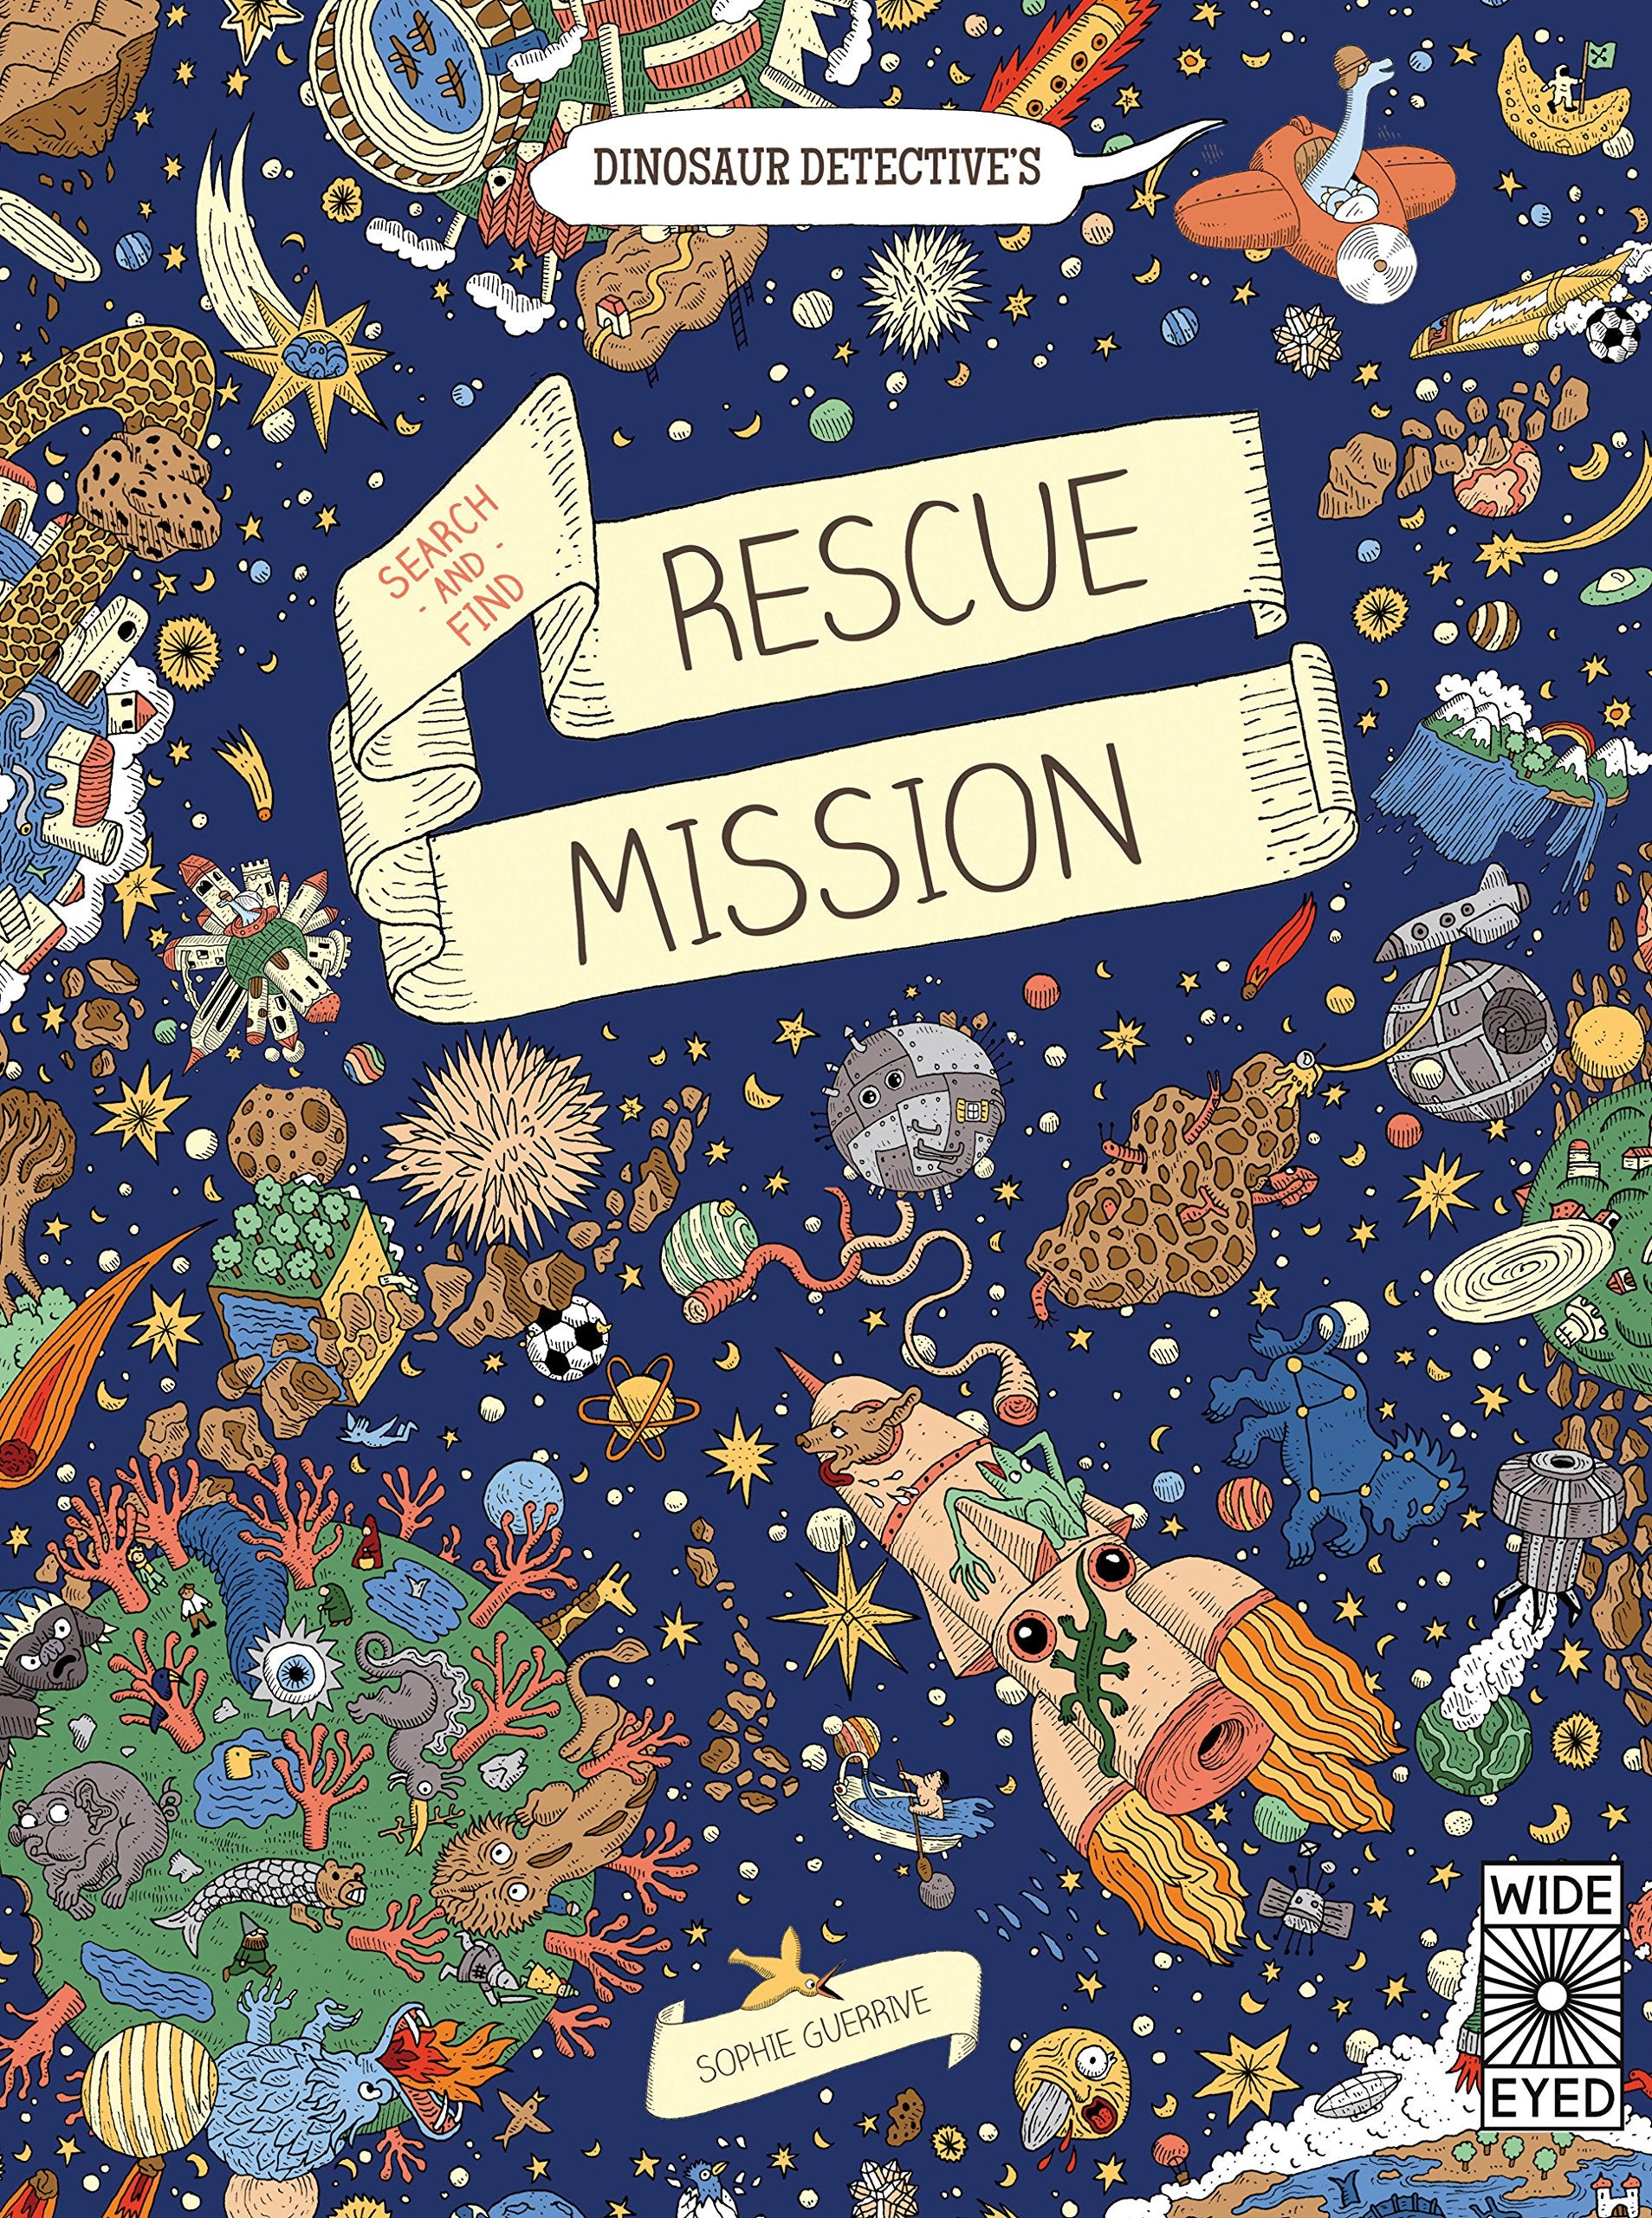 Dinosaur Detective's Search-and-Find Rescue Mission - Me Books Asia Store